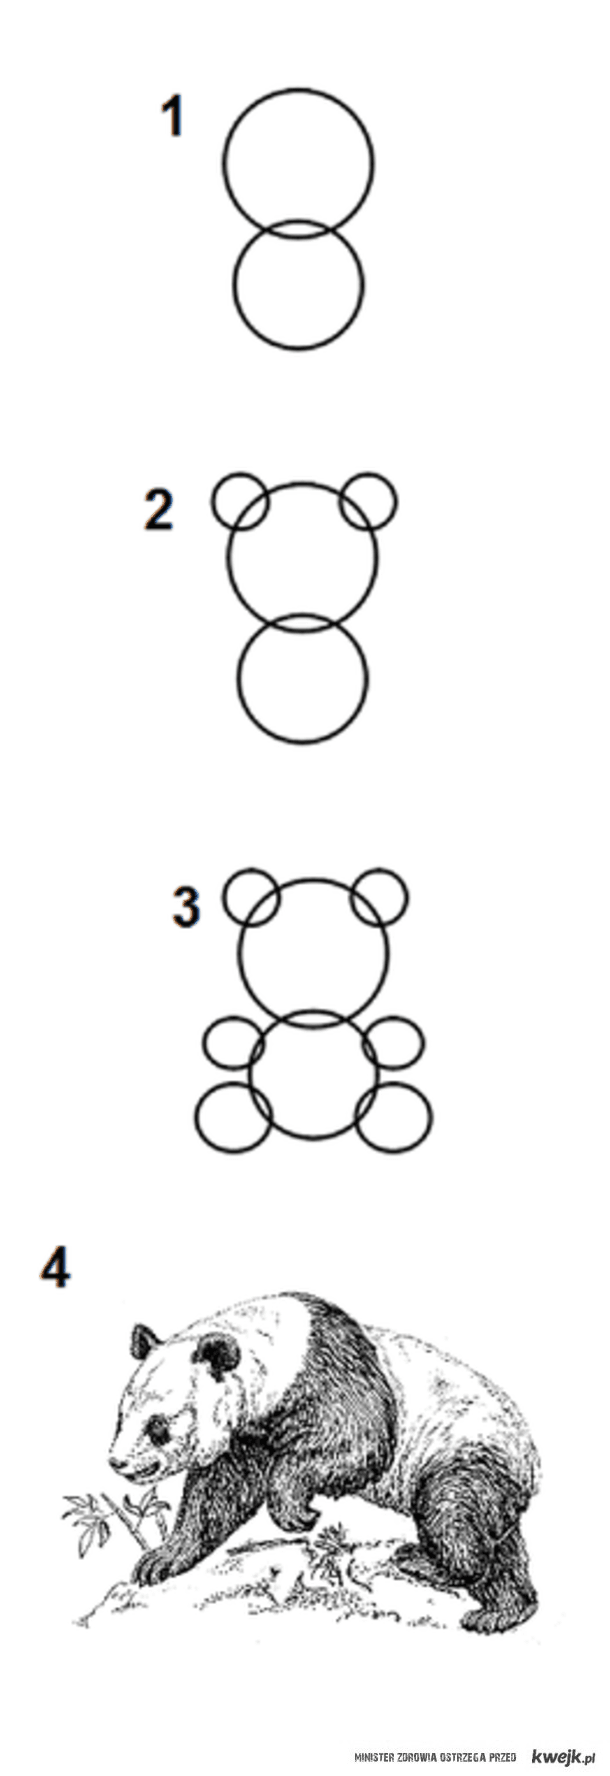 how to draw a step by step panda learn how to draw a baby panda wild animals step by step panda draw a step step by how to